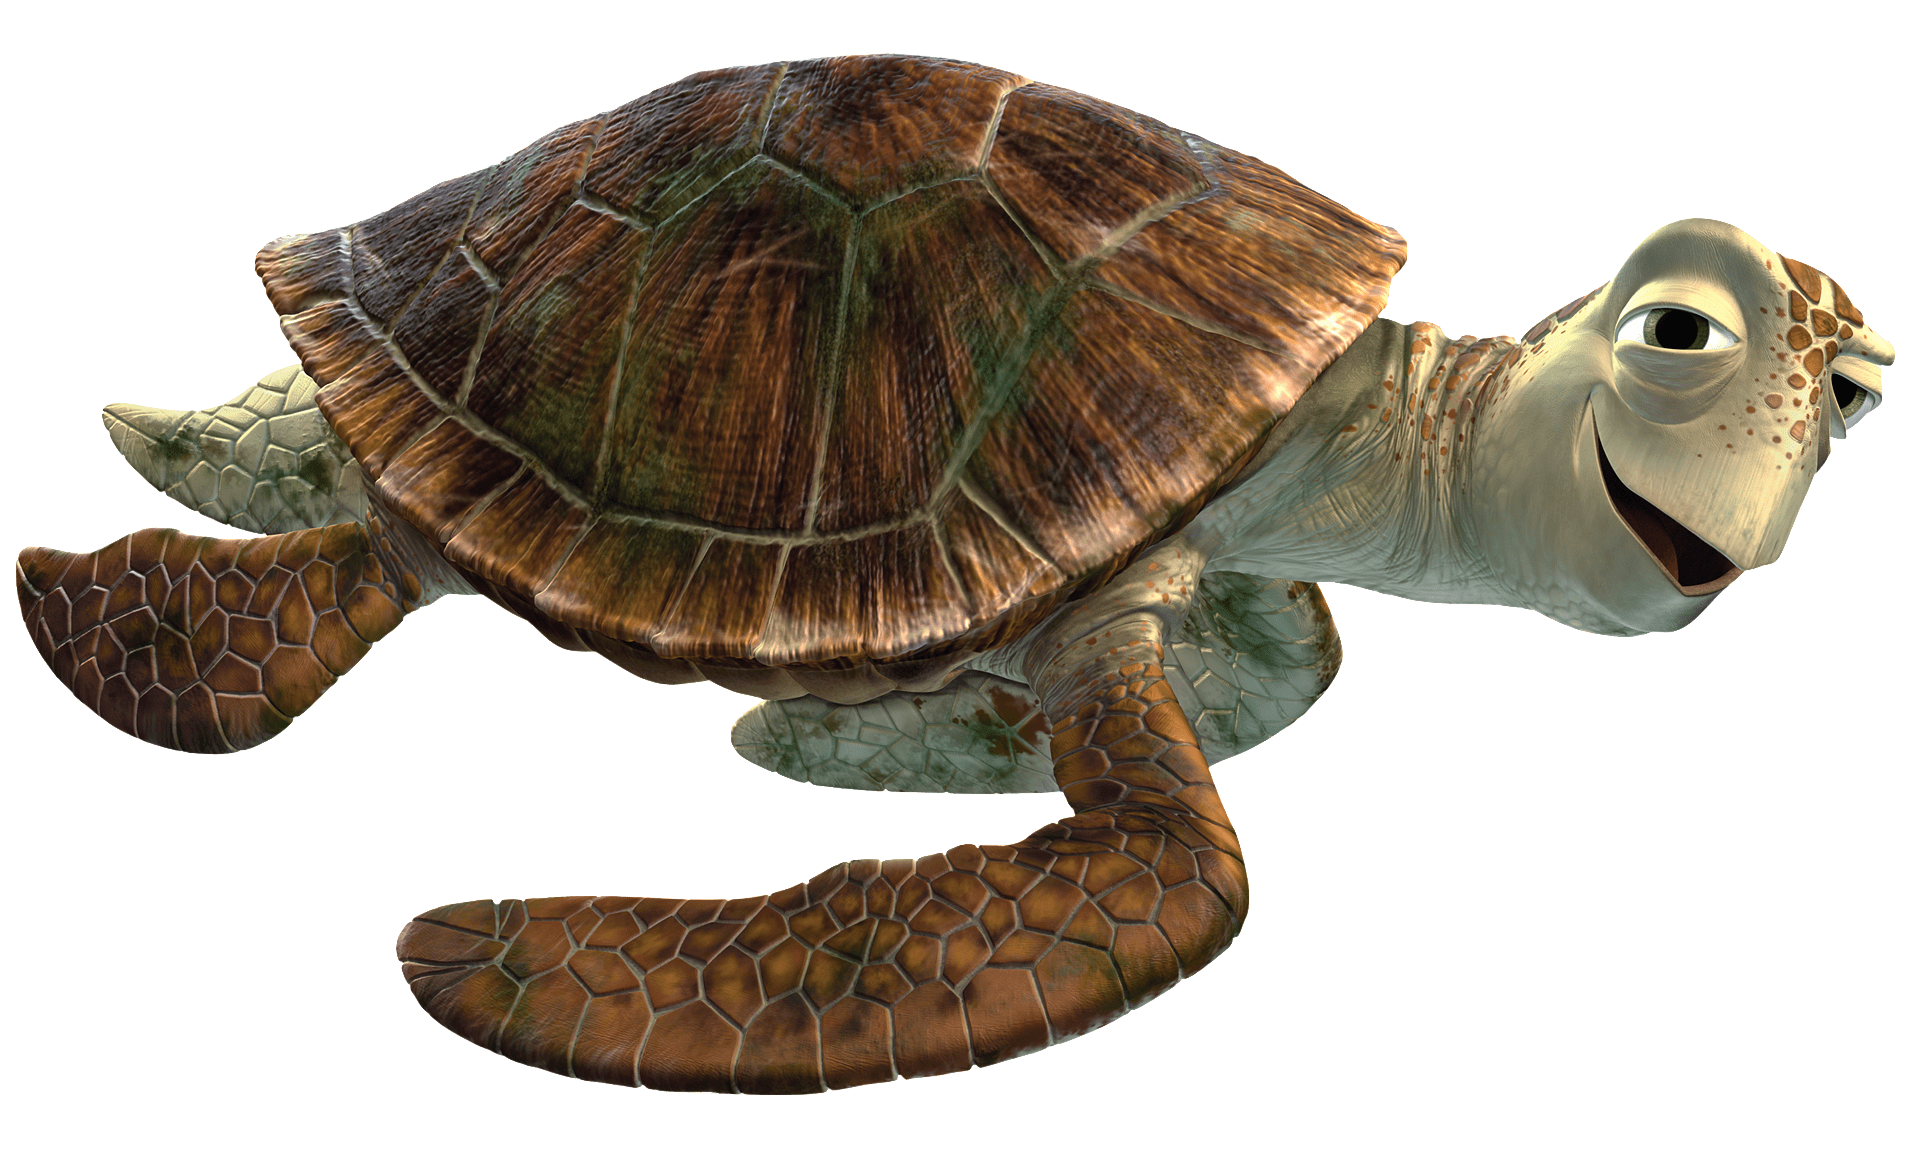 Finding dory transparent png turtle. Nemo images stickpng bruce